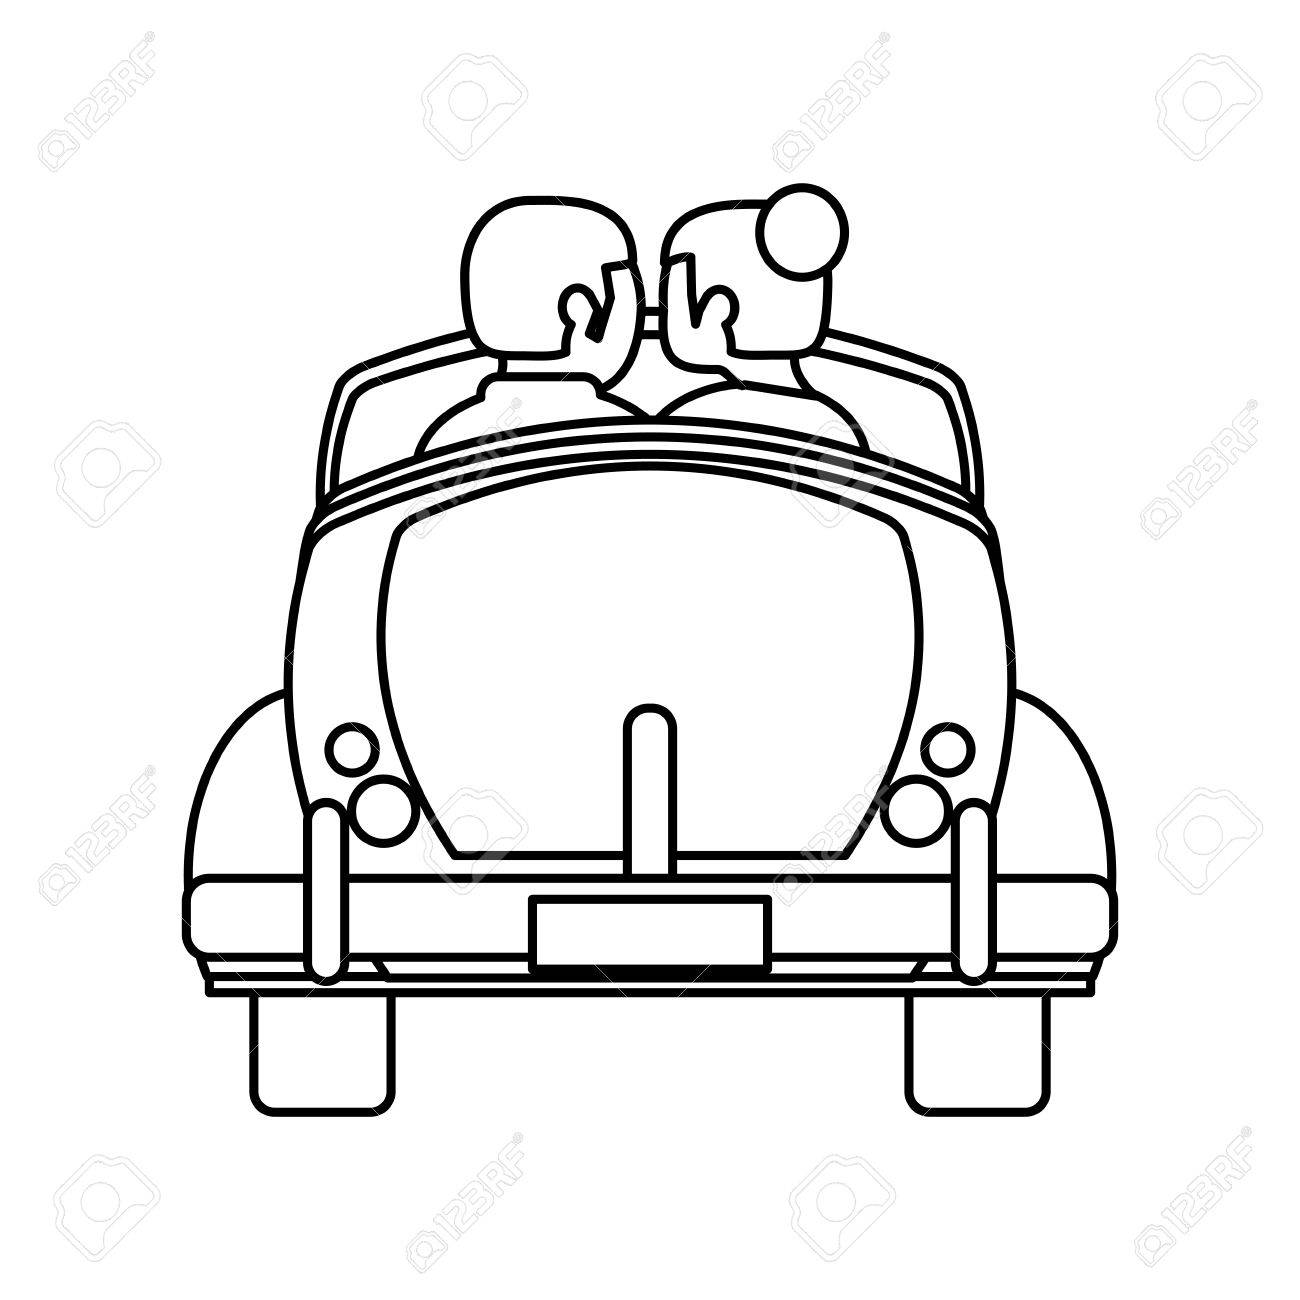 Couple Car Honeymoon Travel Outline Vector Illustration Eps 10 Stock